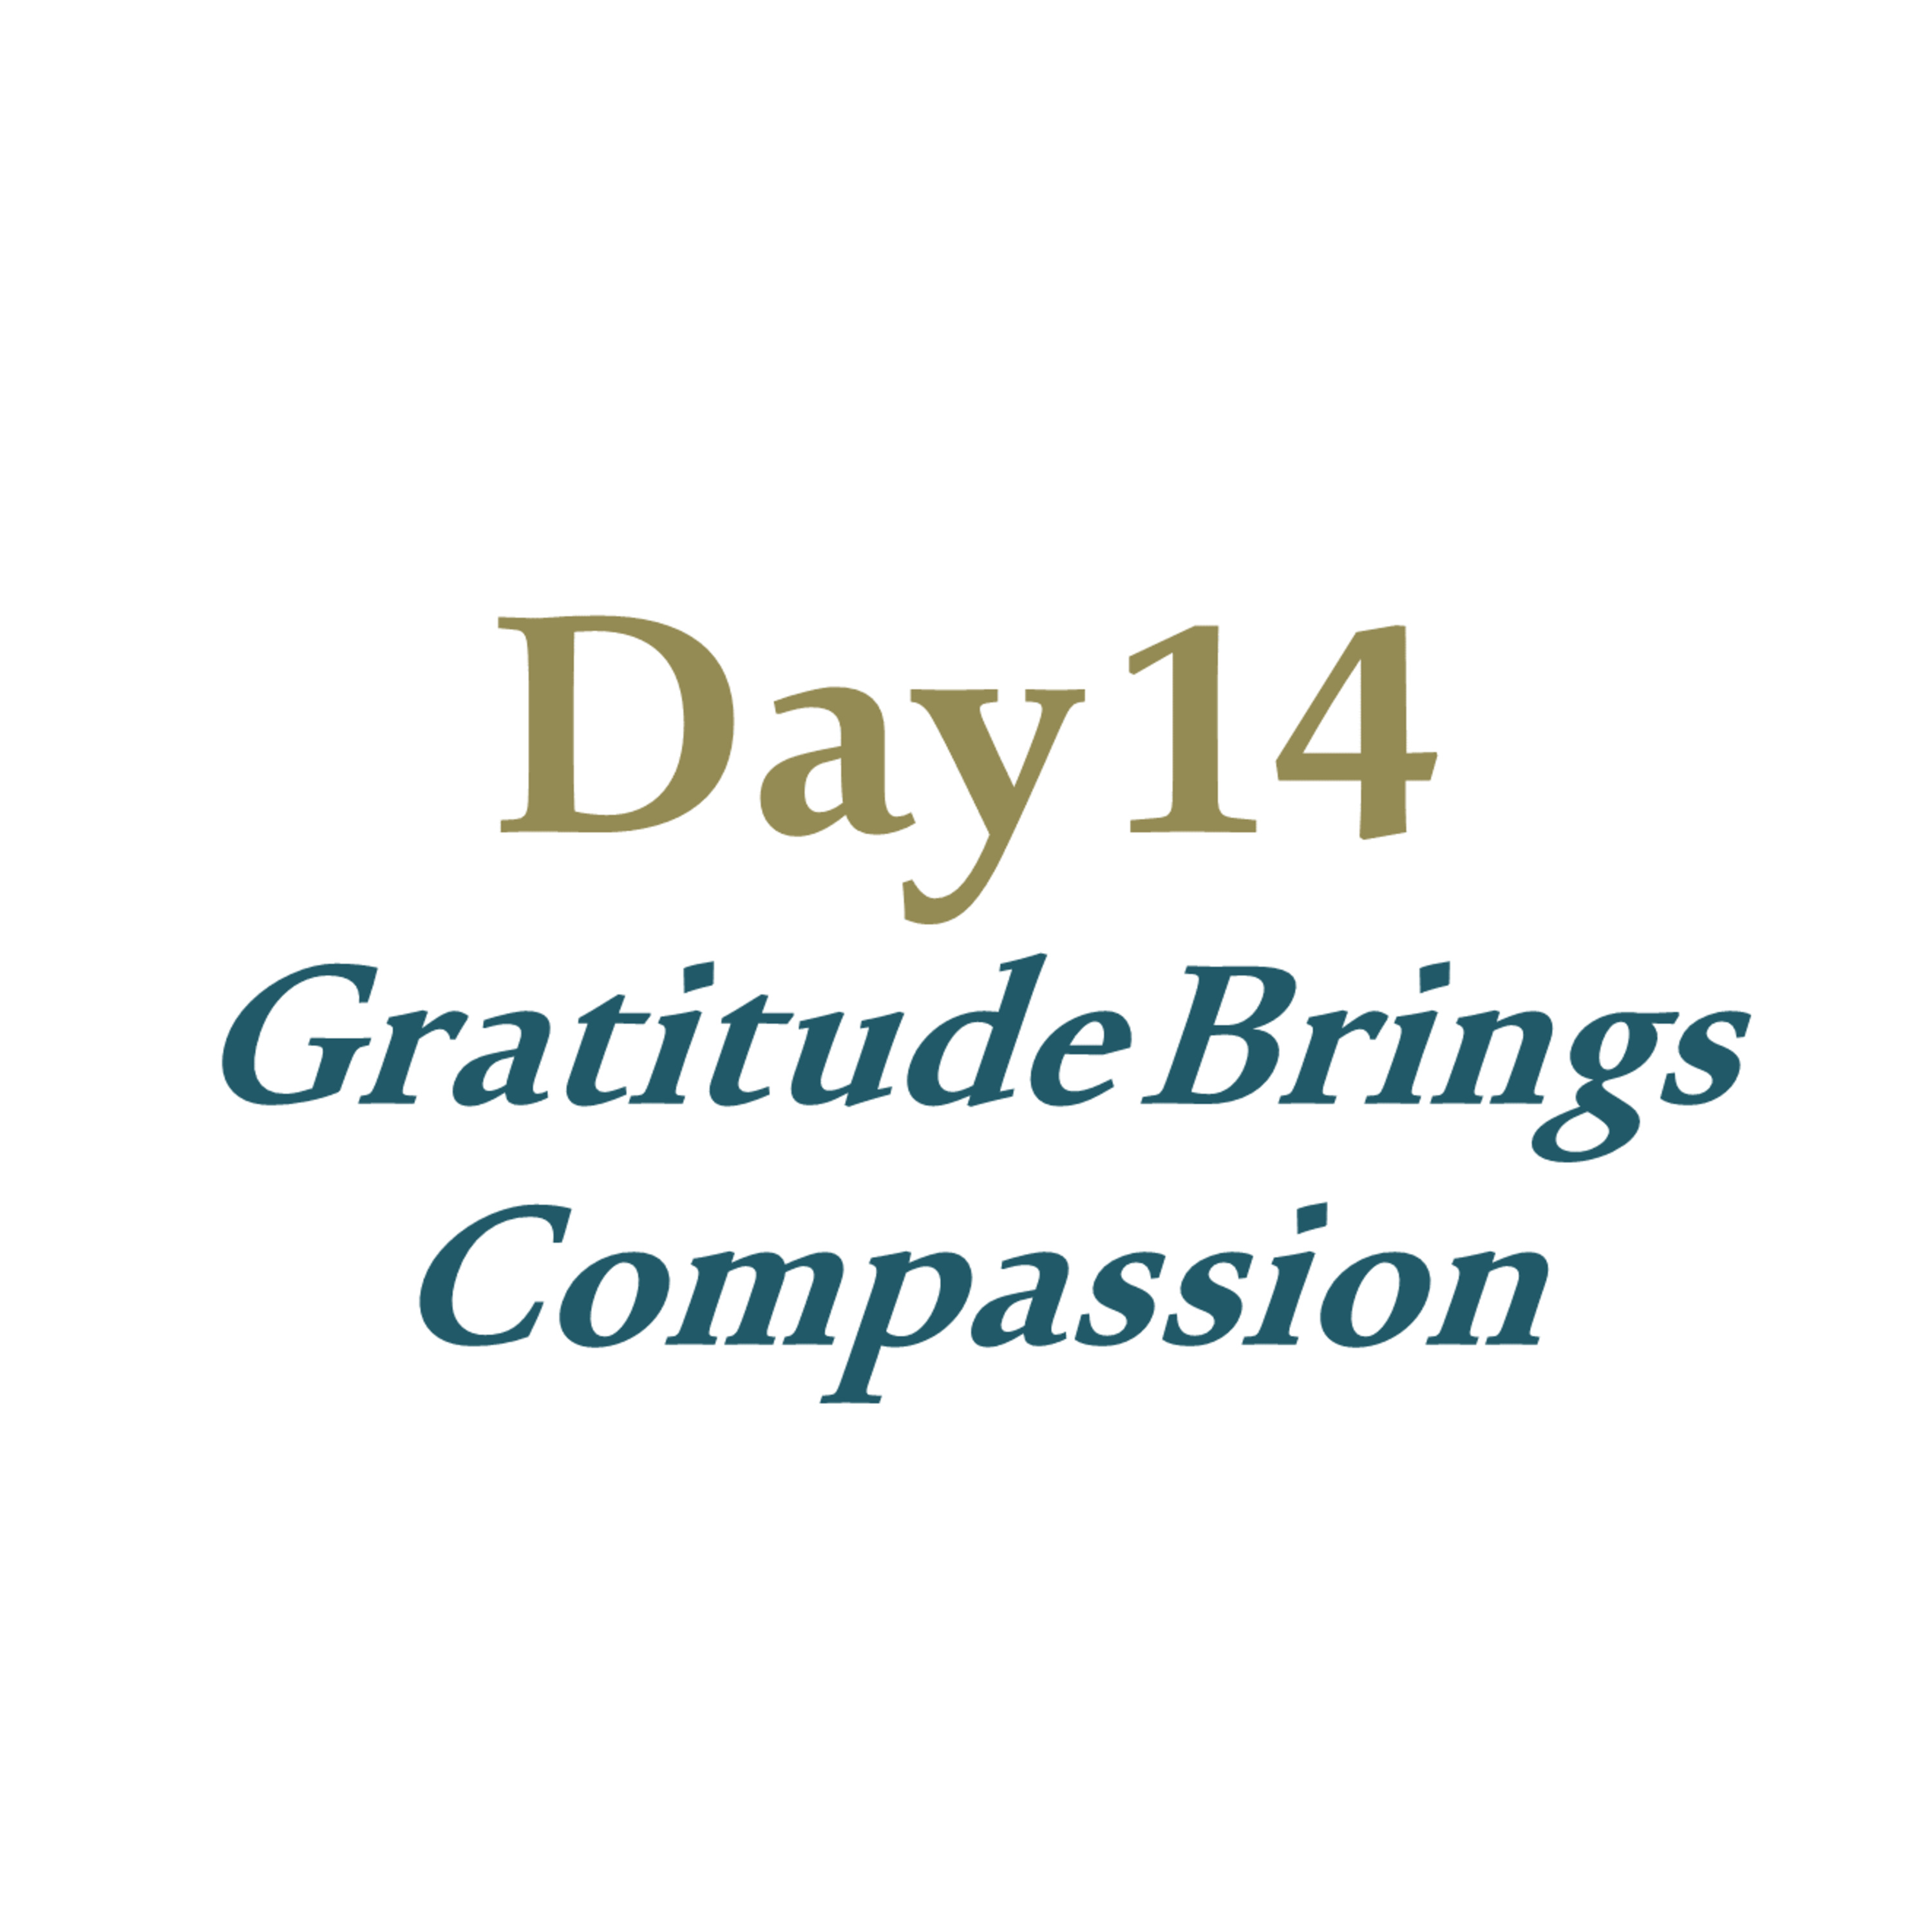 Day 14 - Gratitude Brings Compassion